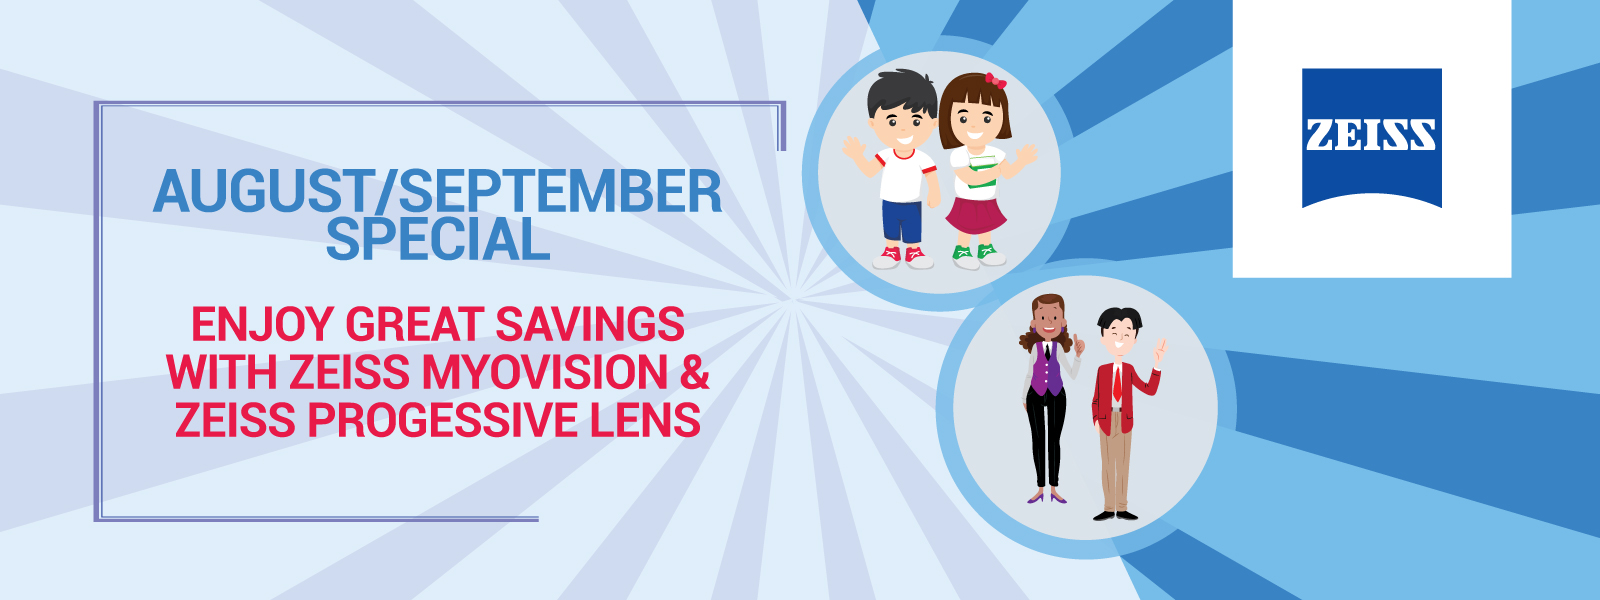 Enjoy great savings this August & September with ZEISS & Nanyang Optical